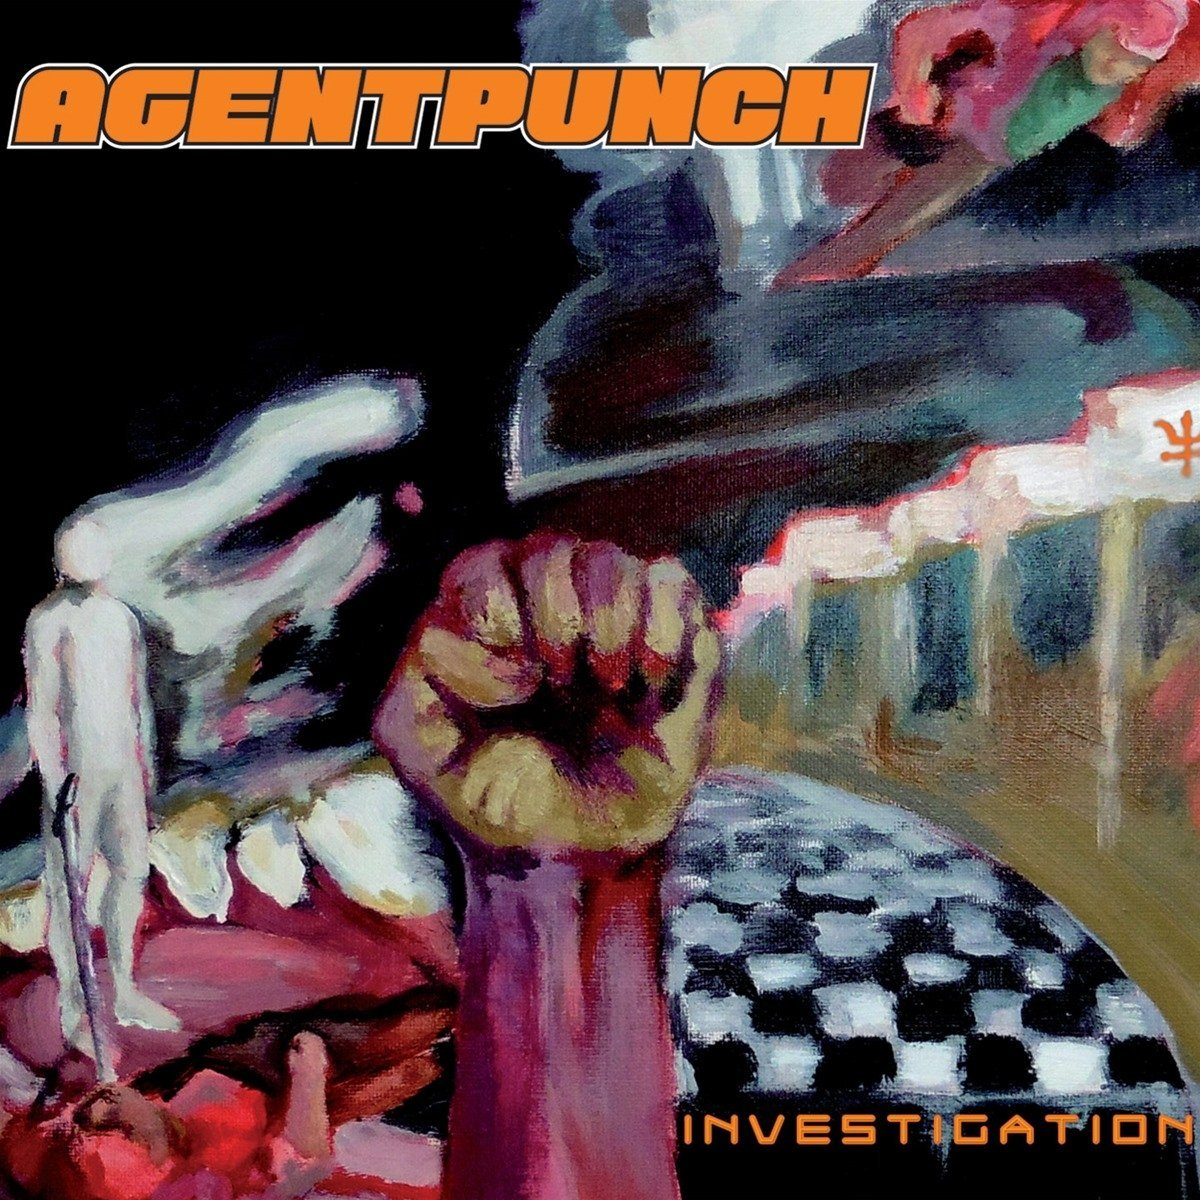 Agentpunch - Investigation